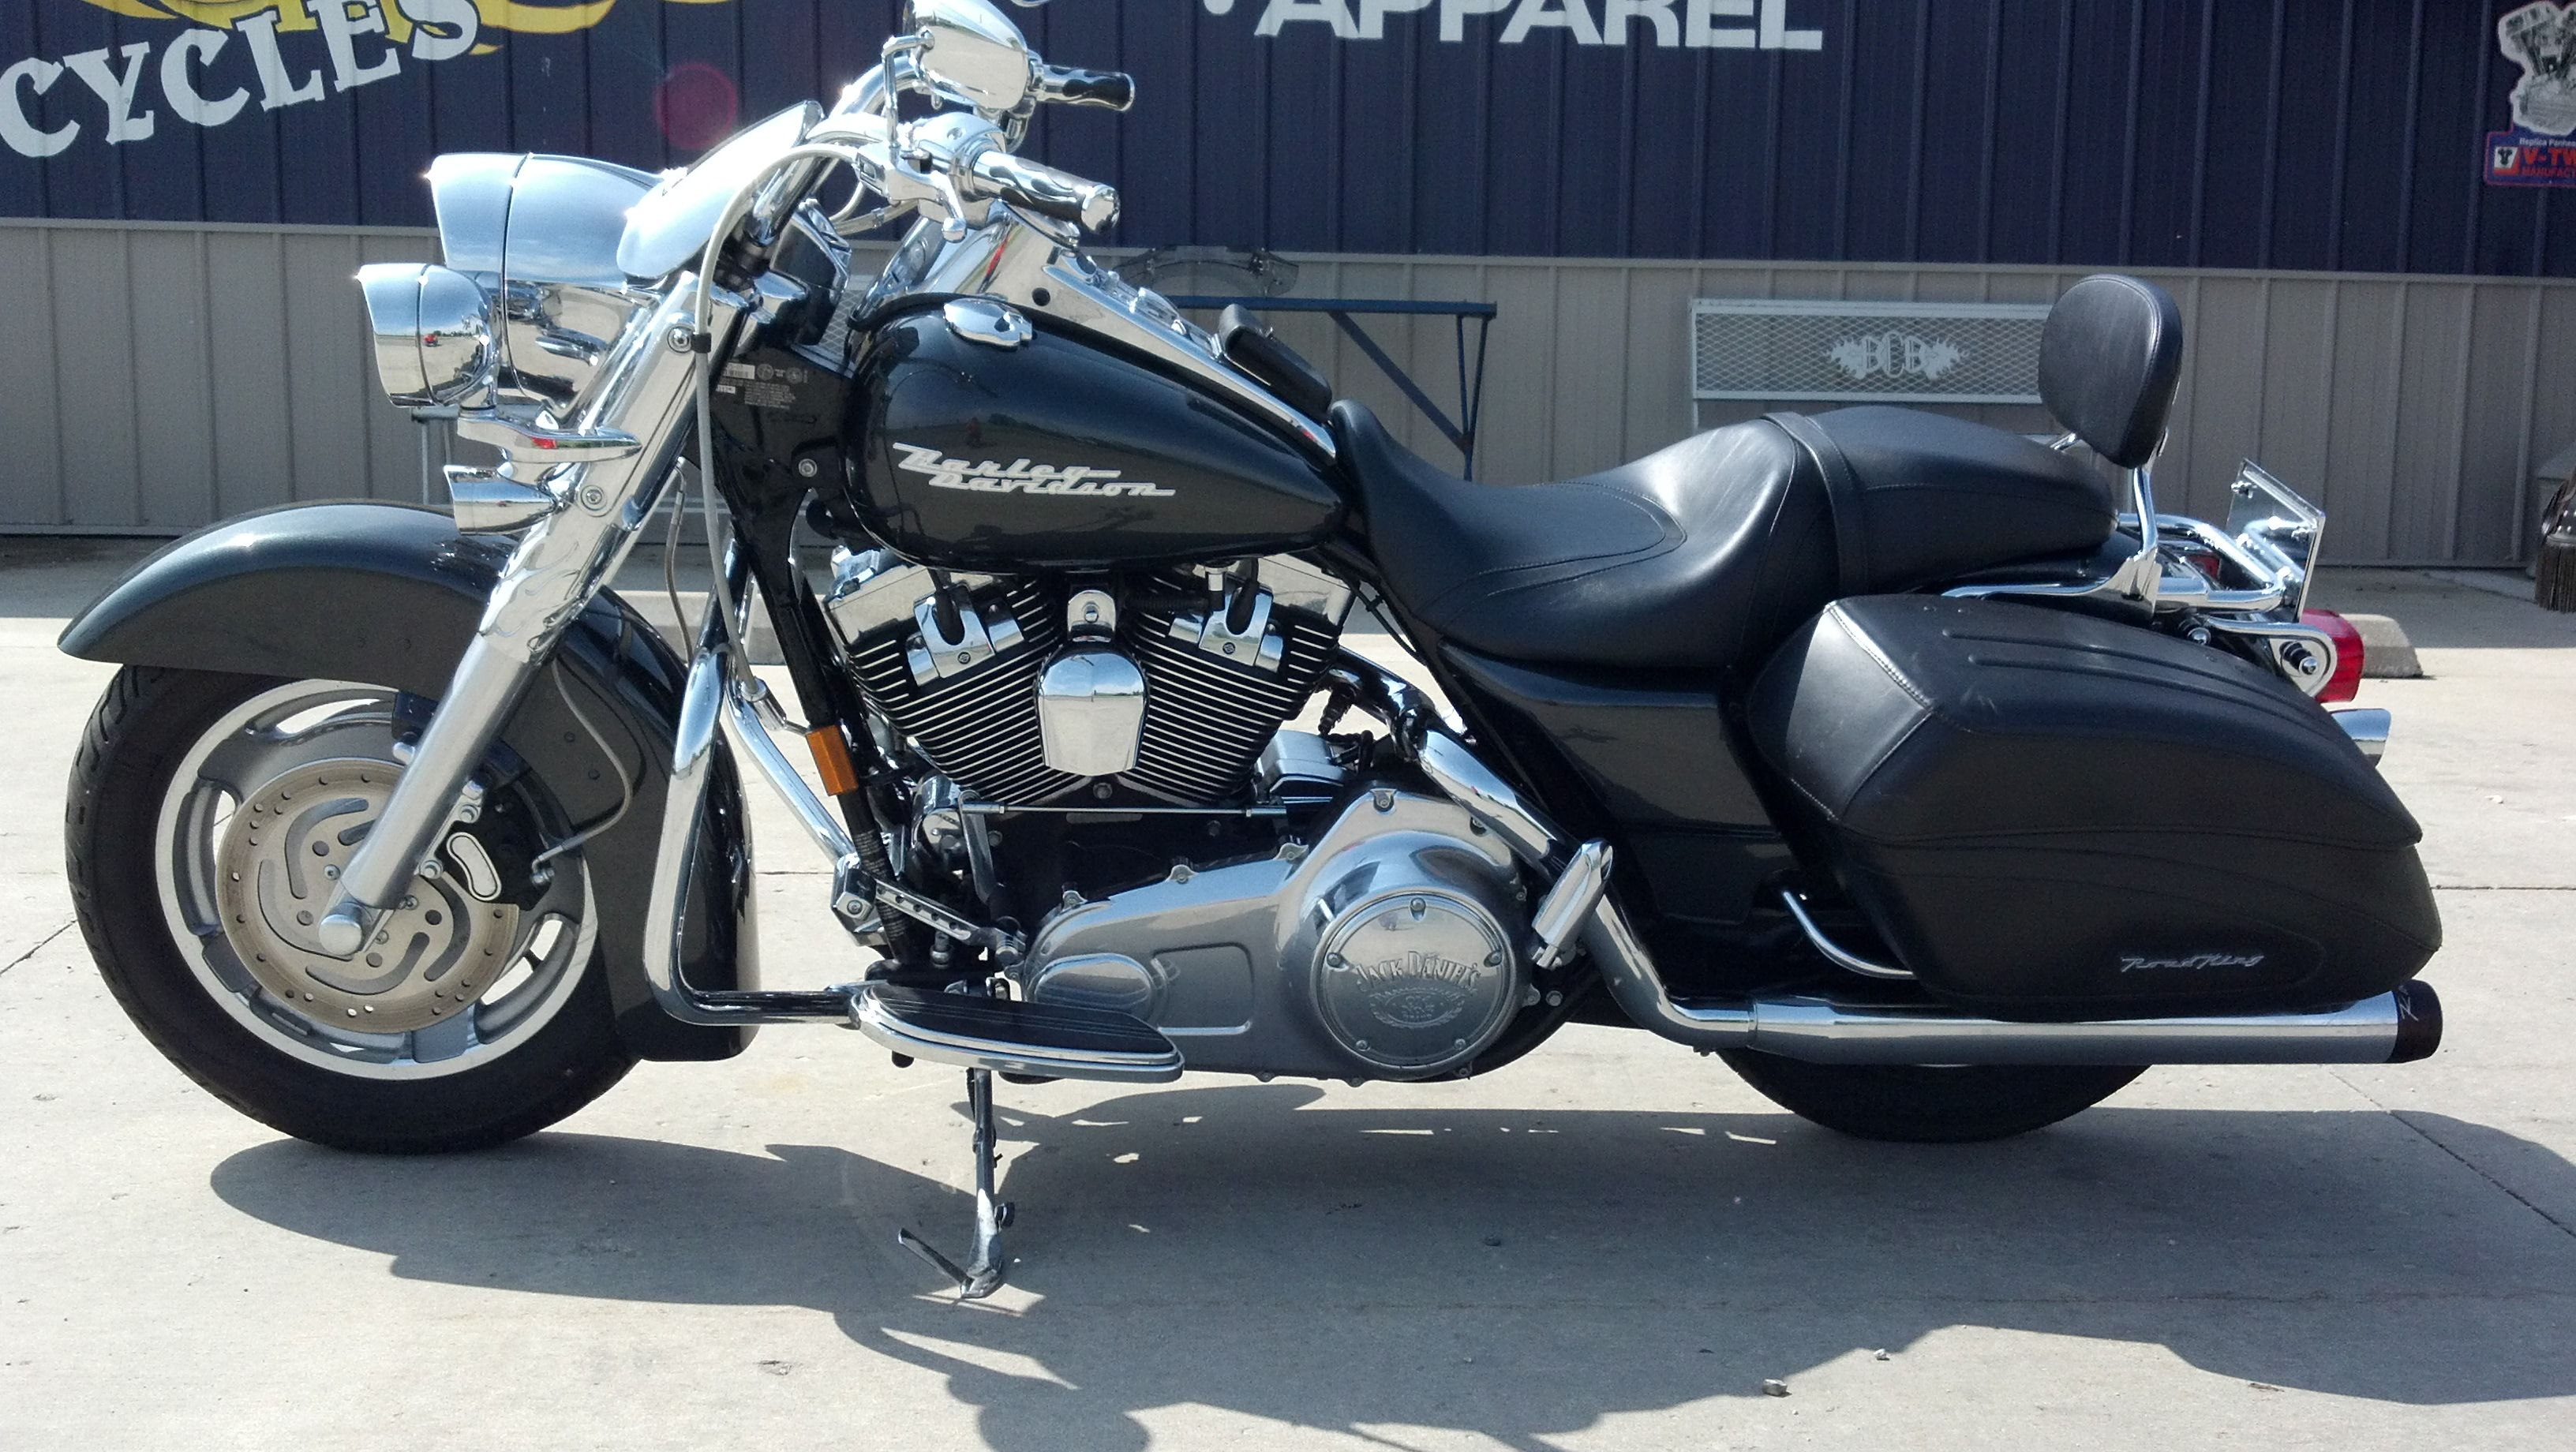 2007 harley road king custom with faring cars harley. Black Bedroom Furniture Sets. Home Design Ideas